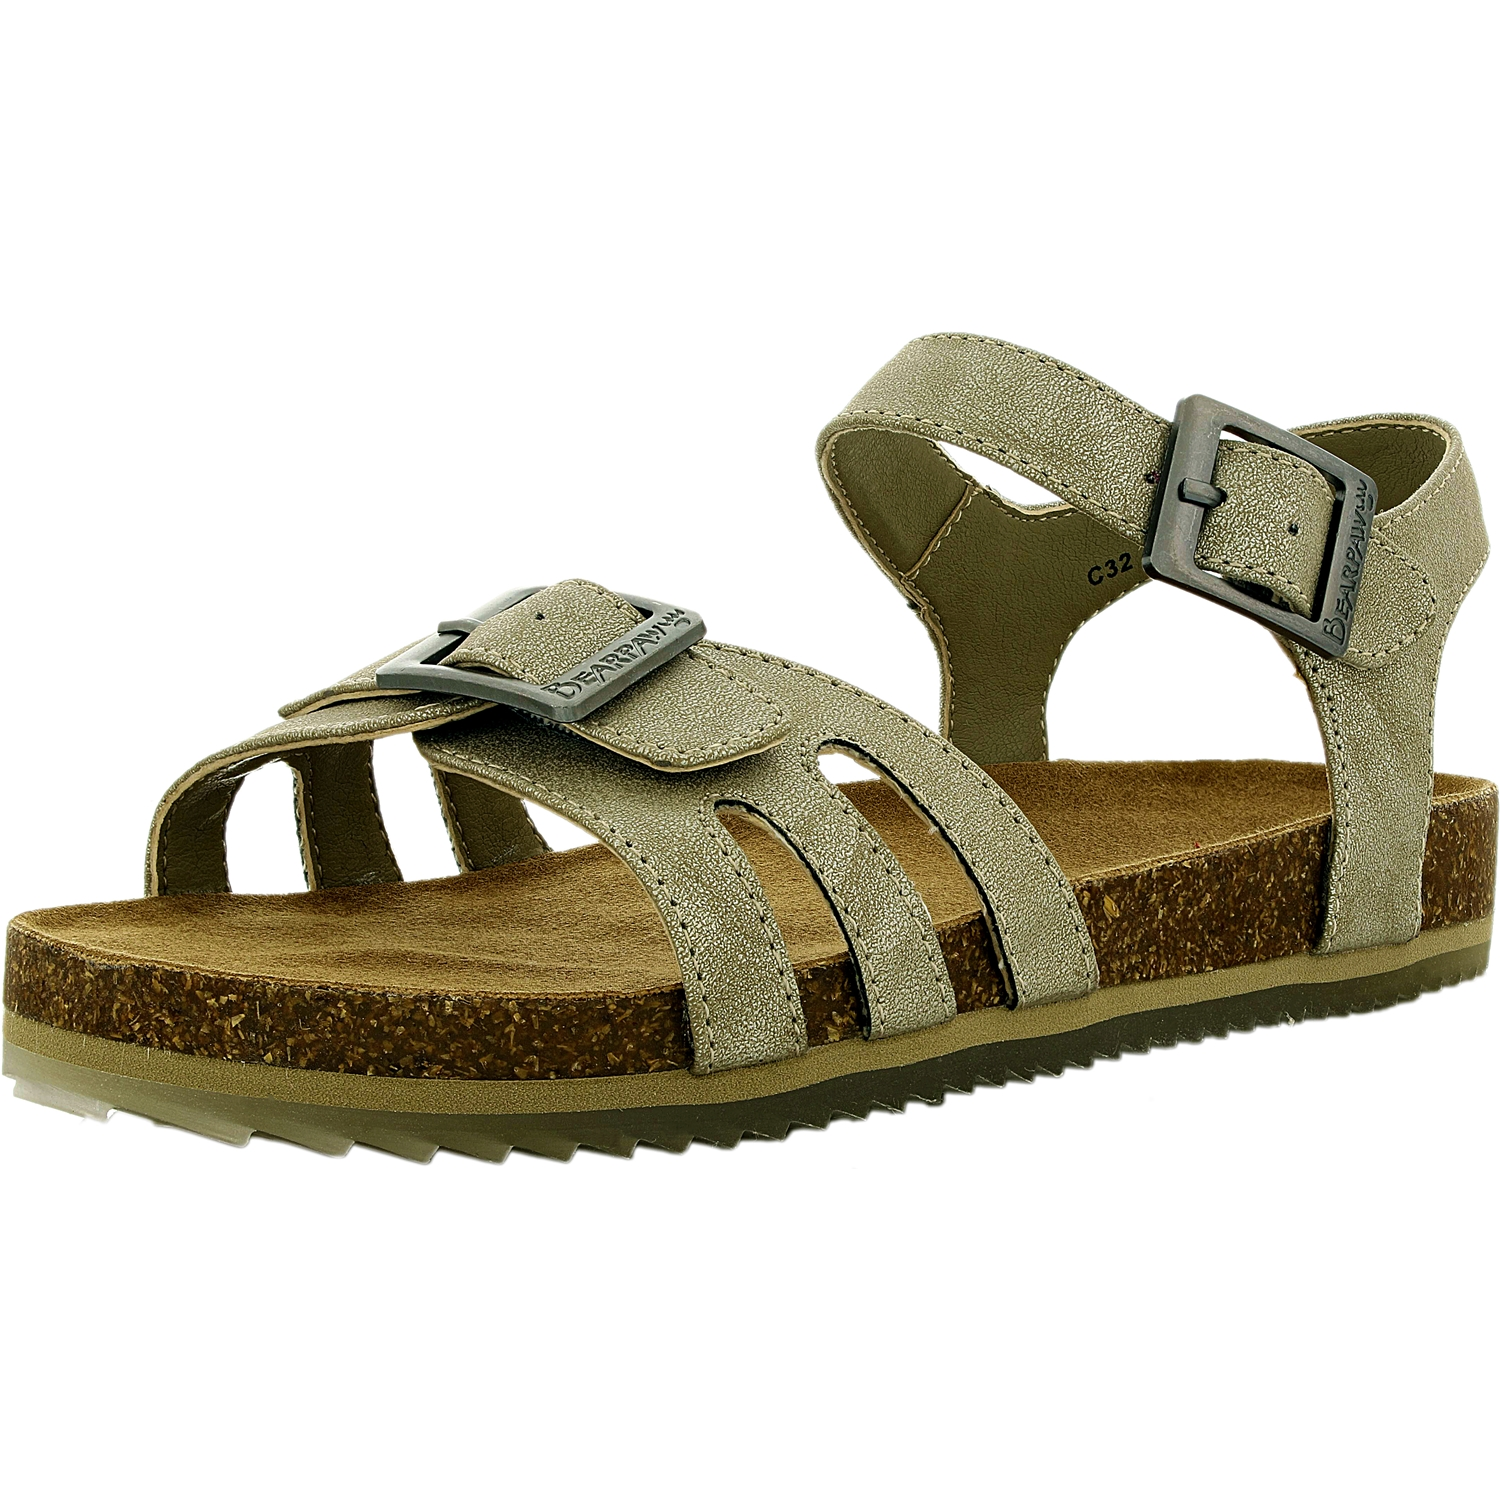 Bearpaw Girl's Delilah Leather Brown Ankle-High Suede Sandal 1M by Bearpaw